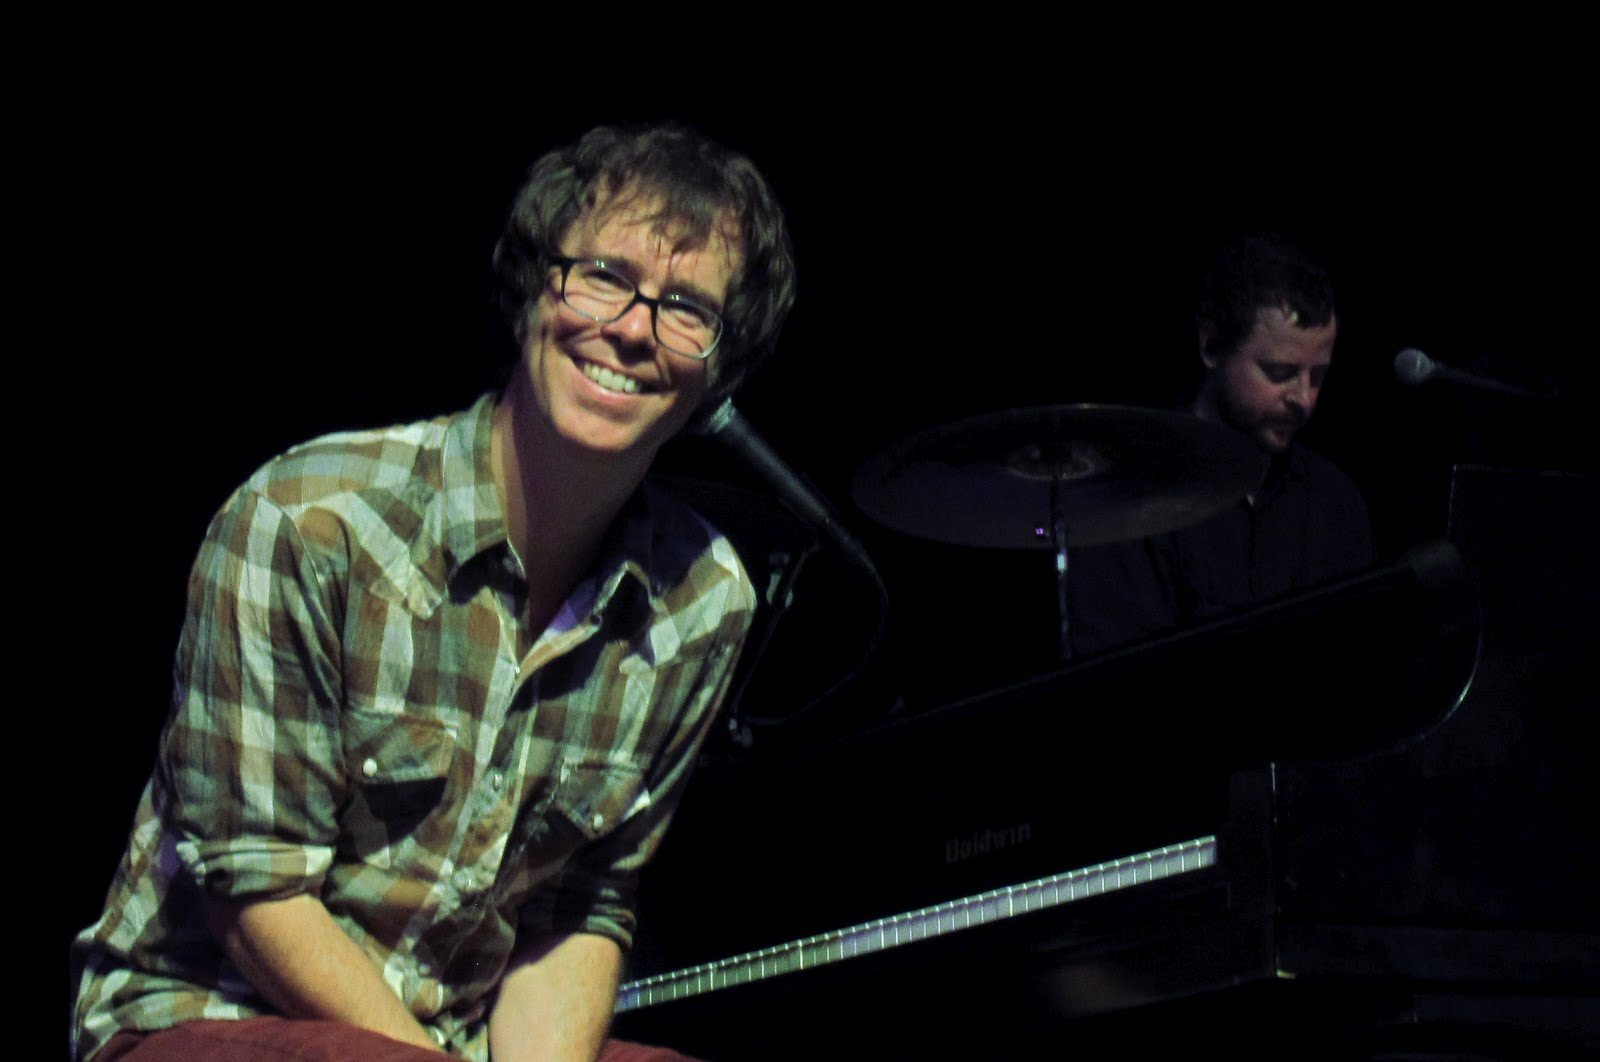 Top 10 Ben Folds Songs